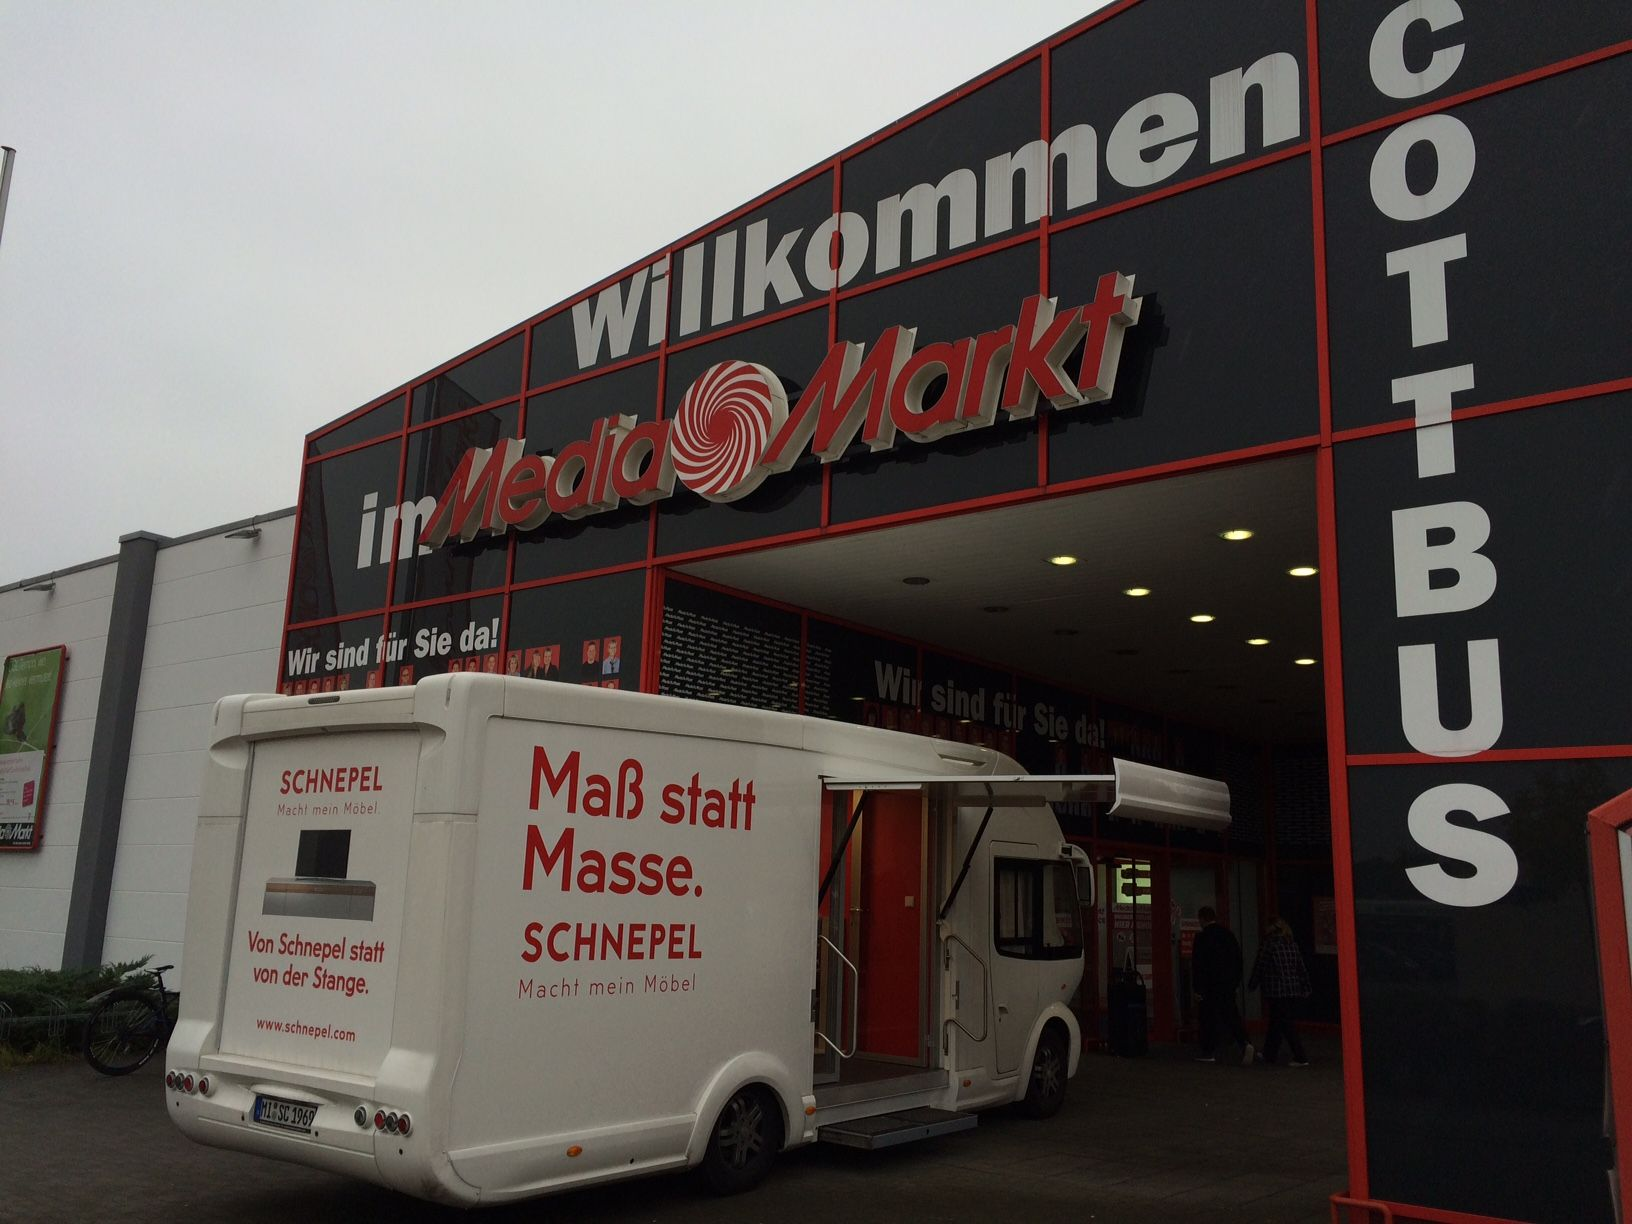 Pin by Schnepel GmbH & Co. KG on Schnepel Mobil Roadshow | Schnepel ...